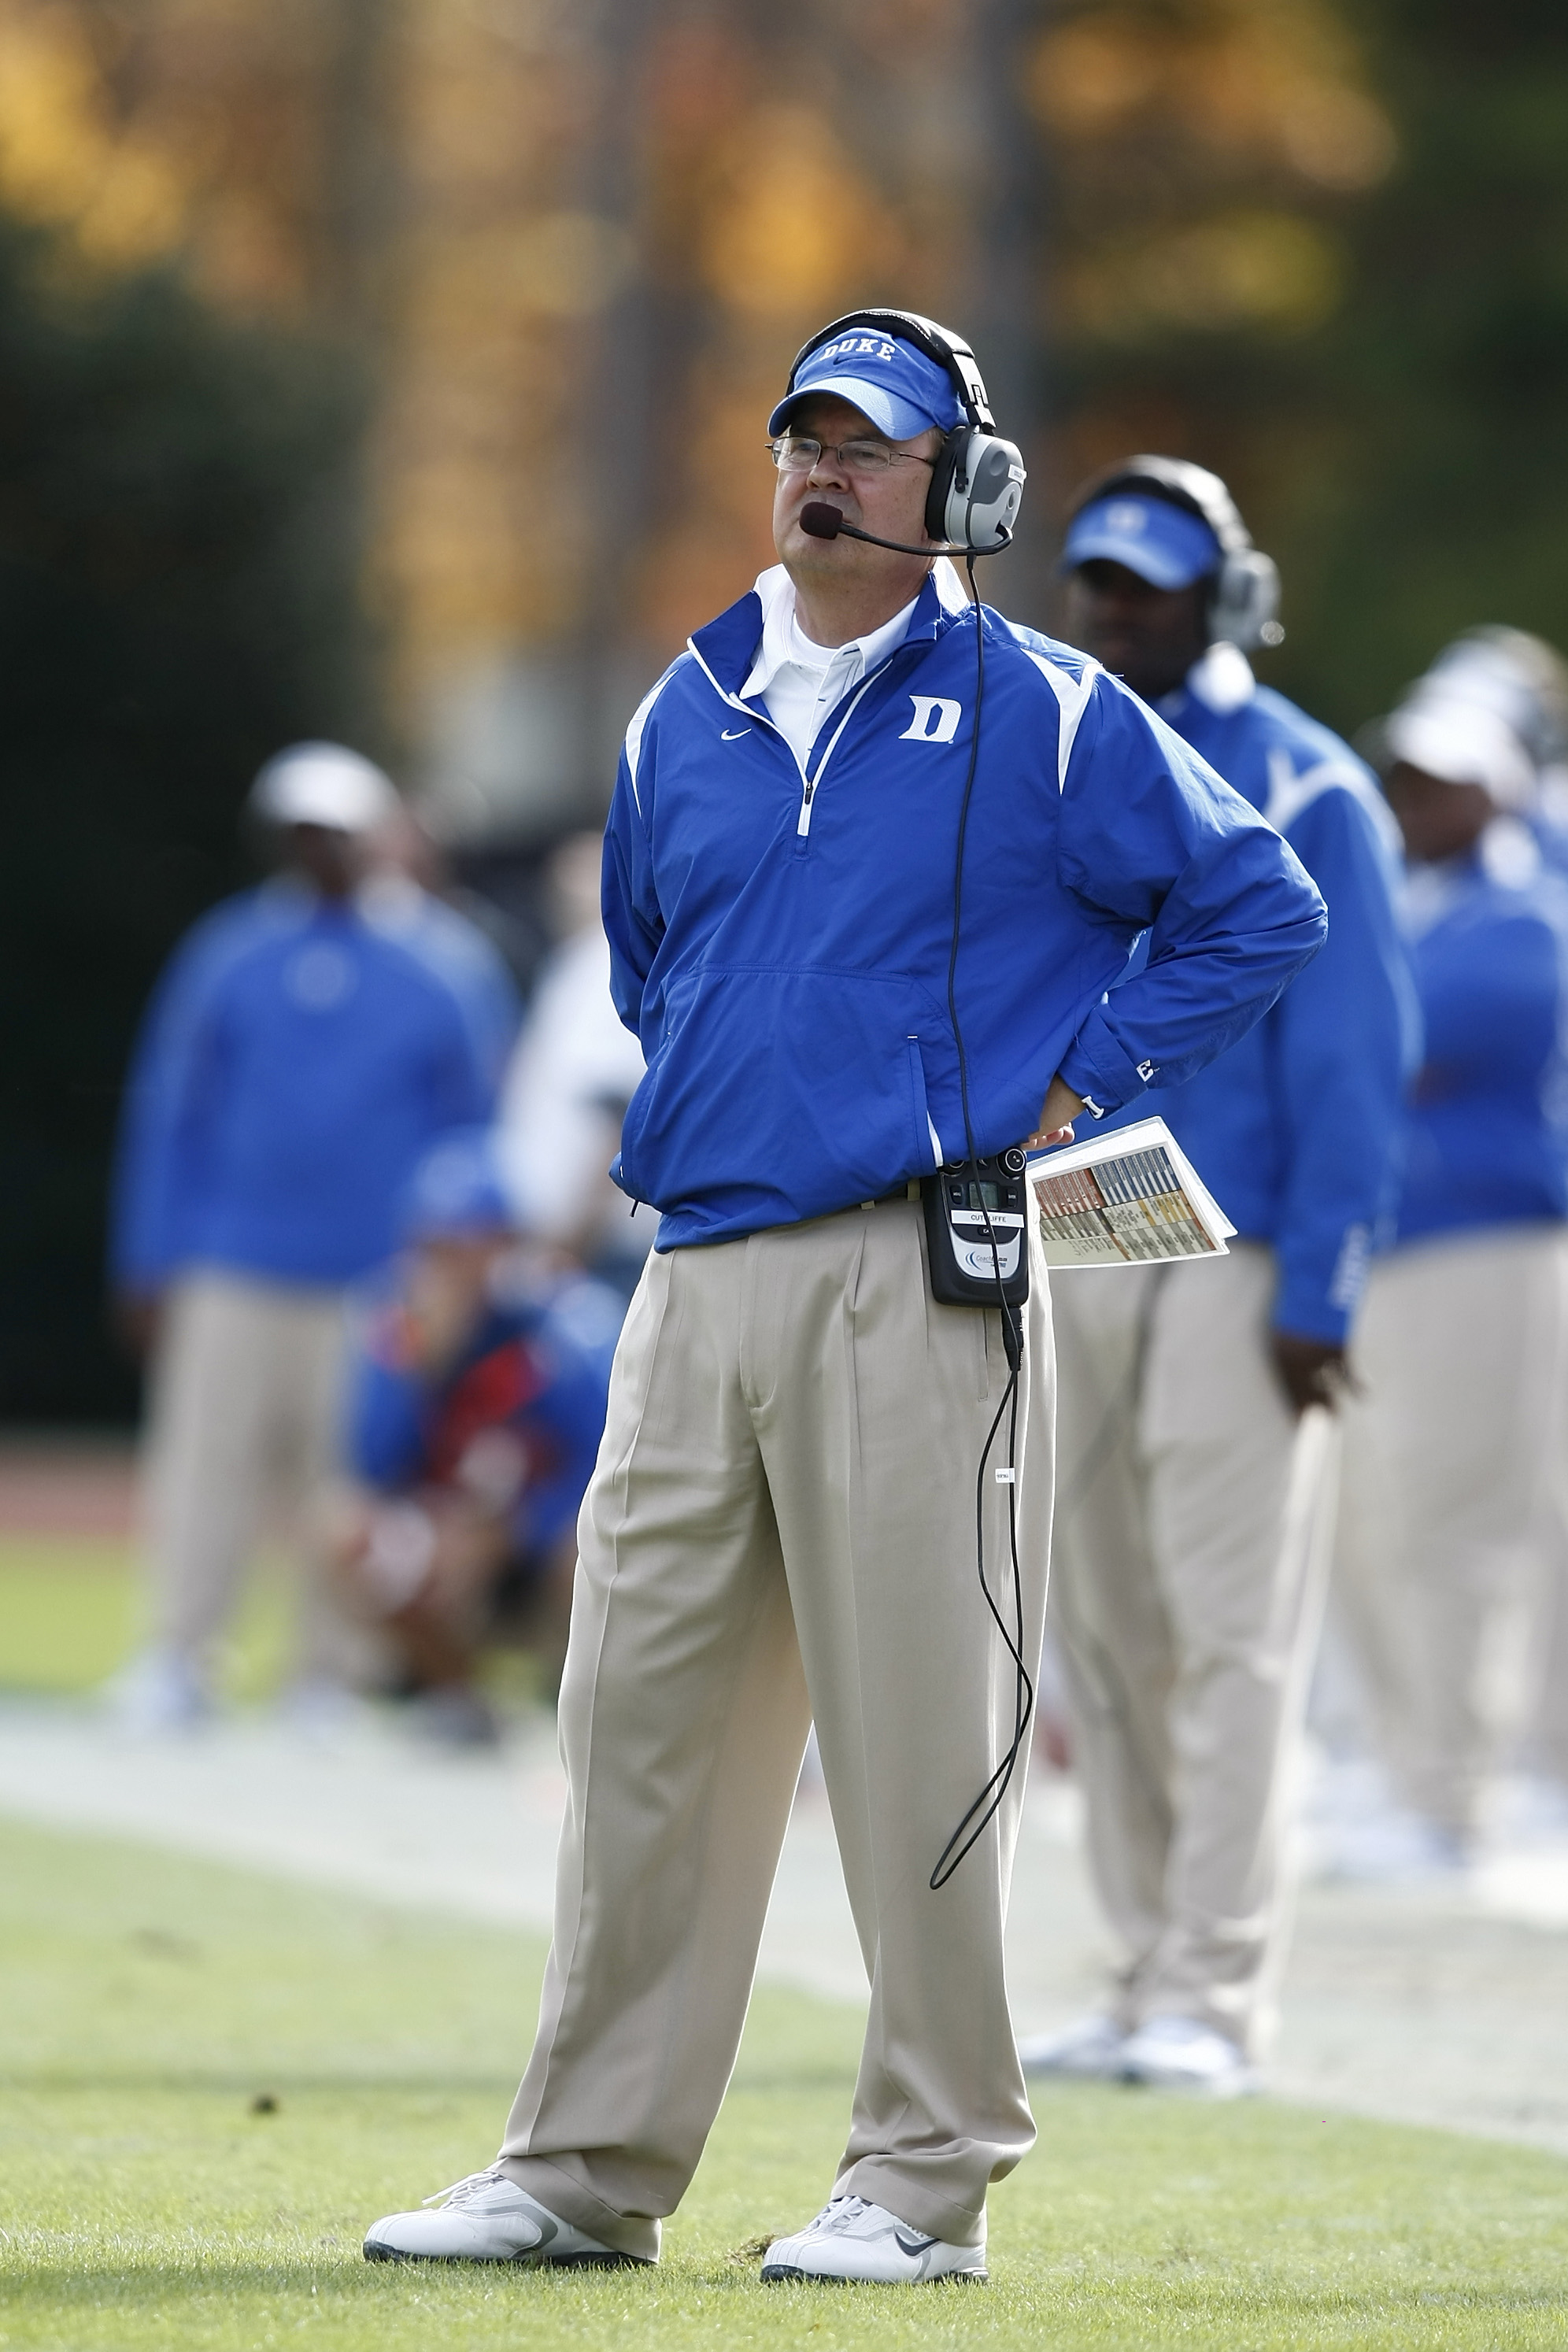 DURHAM, NC - NOVEMBER 14:  Head coach David Cutcliffe of the Duke Blue Devils looks on against the Georgia Tech Yellow Jackets at Wallace Wade Stadium on November 14, 2009 in Durham, North Carolina. (Photo by Joe Robbins/Getty Images)